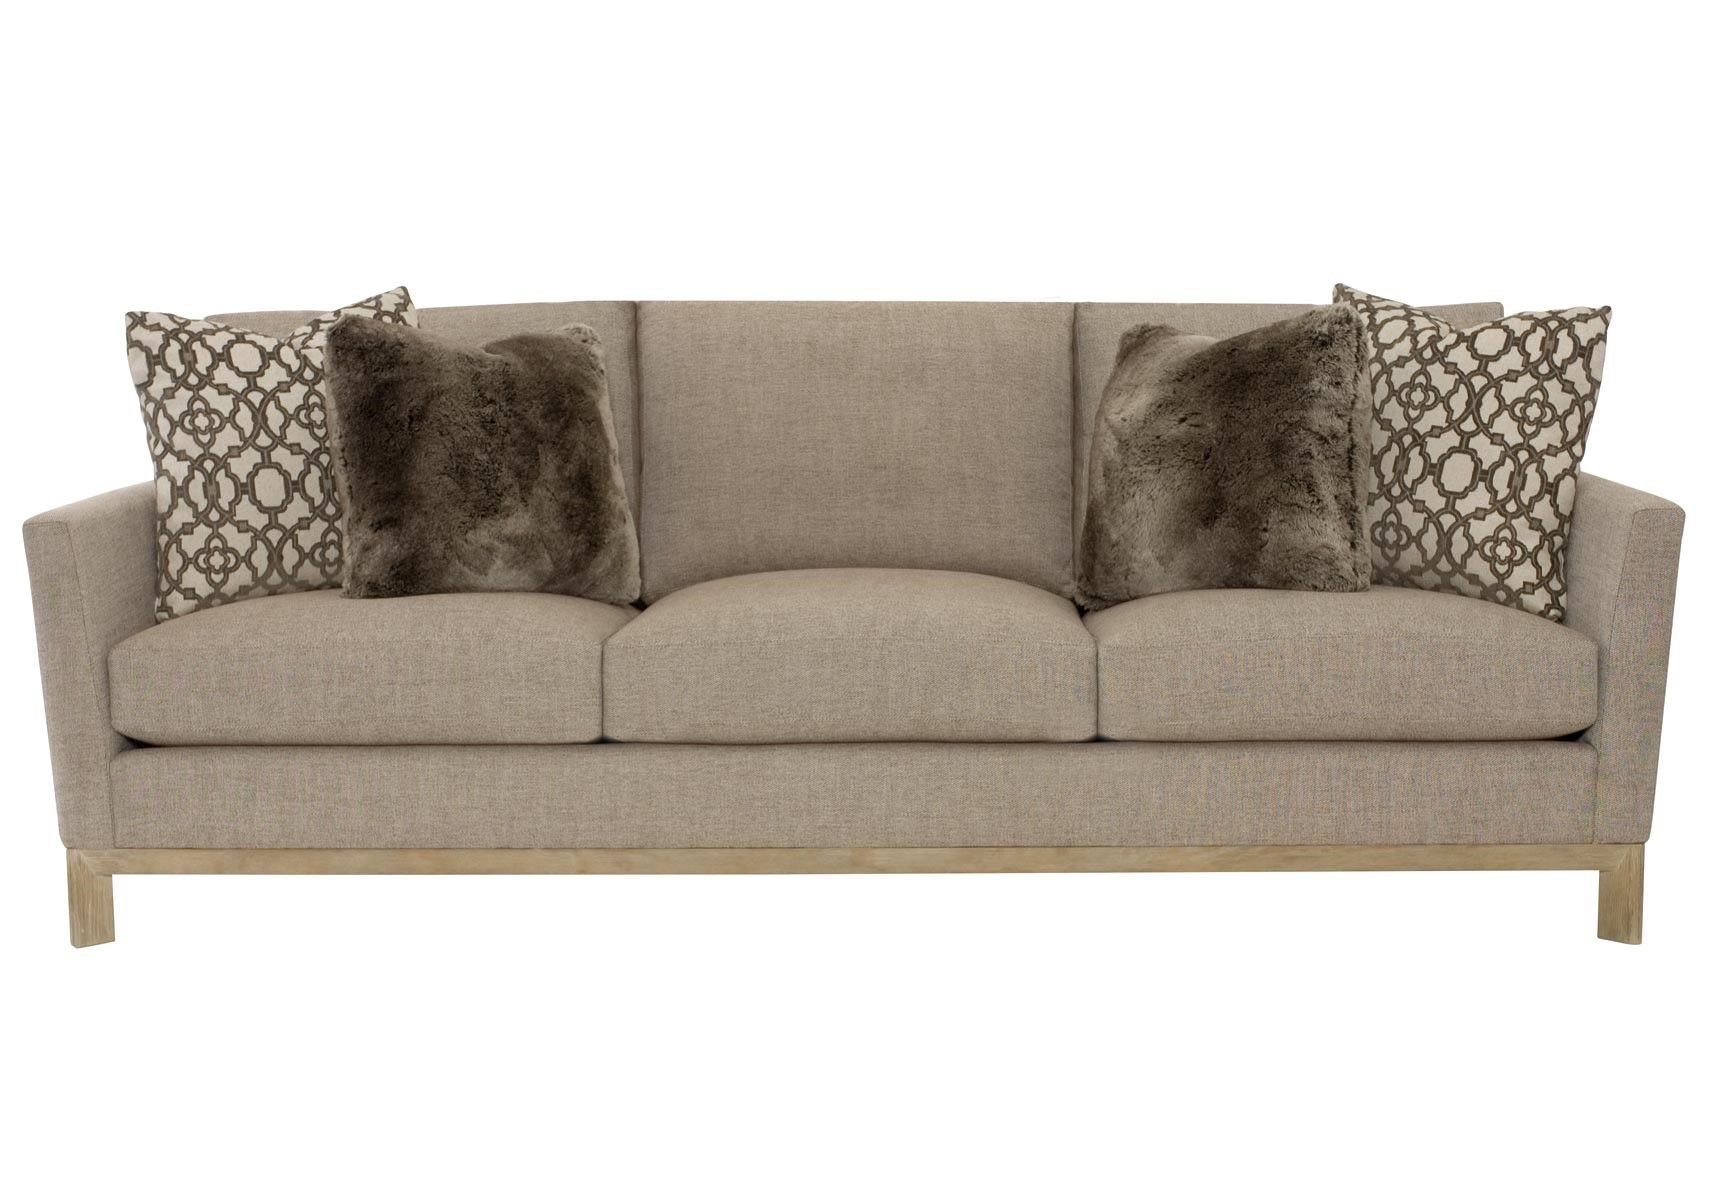 Lacks I S Queen Sleeper Sofa Small Spaces